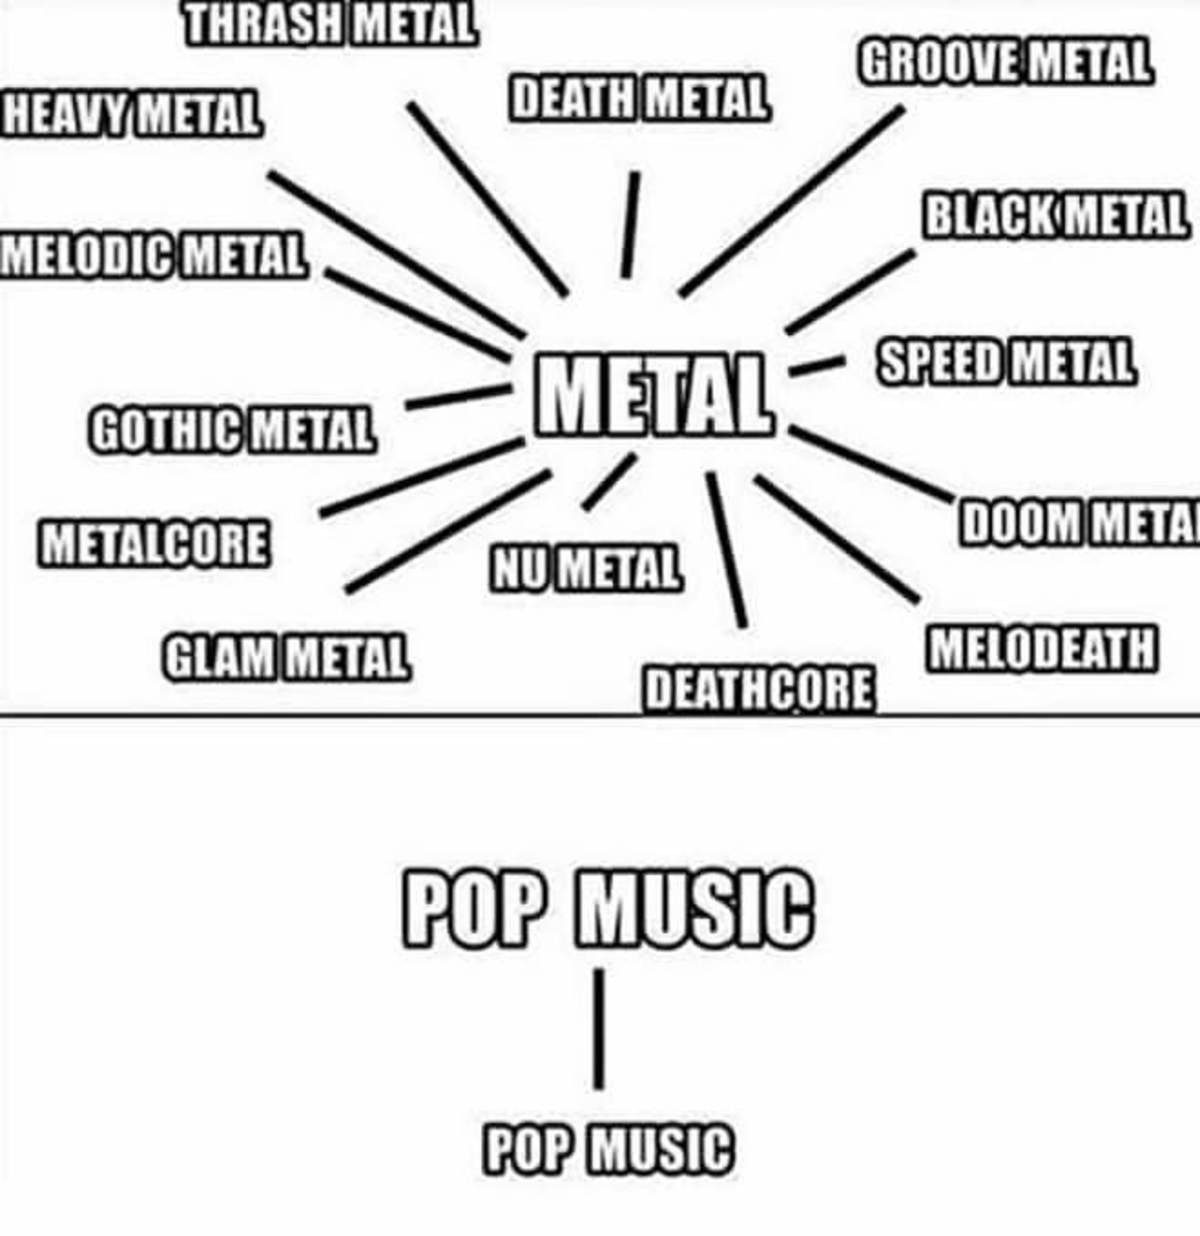 Metal. Heavy metal Death metal Doom metal Nu metal Thrash metal.. roll image Well, Pop just means popular music. Both Michael Jackson and The Beatles were pop music..... so take that with a grain of salt.